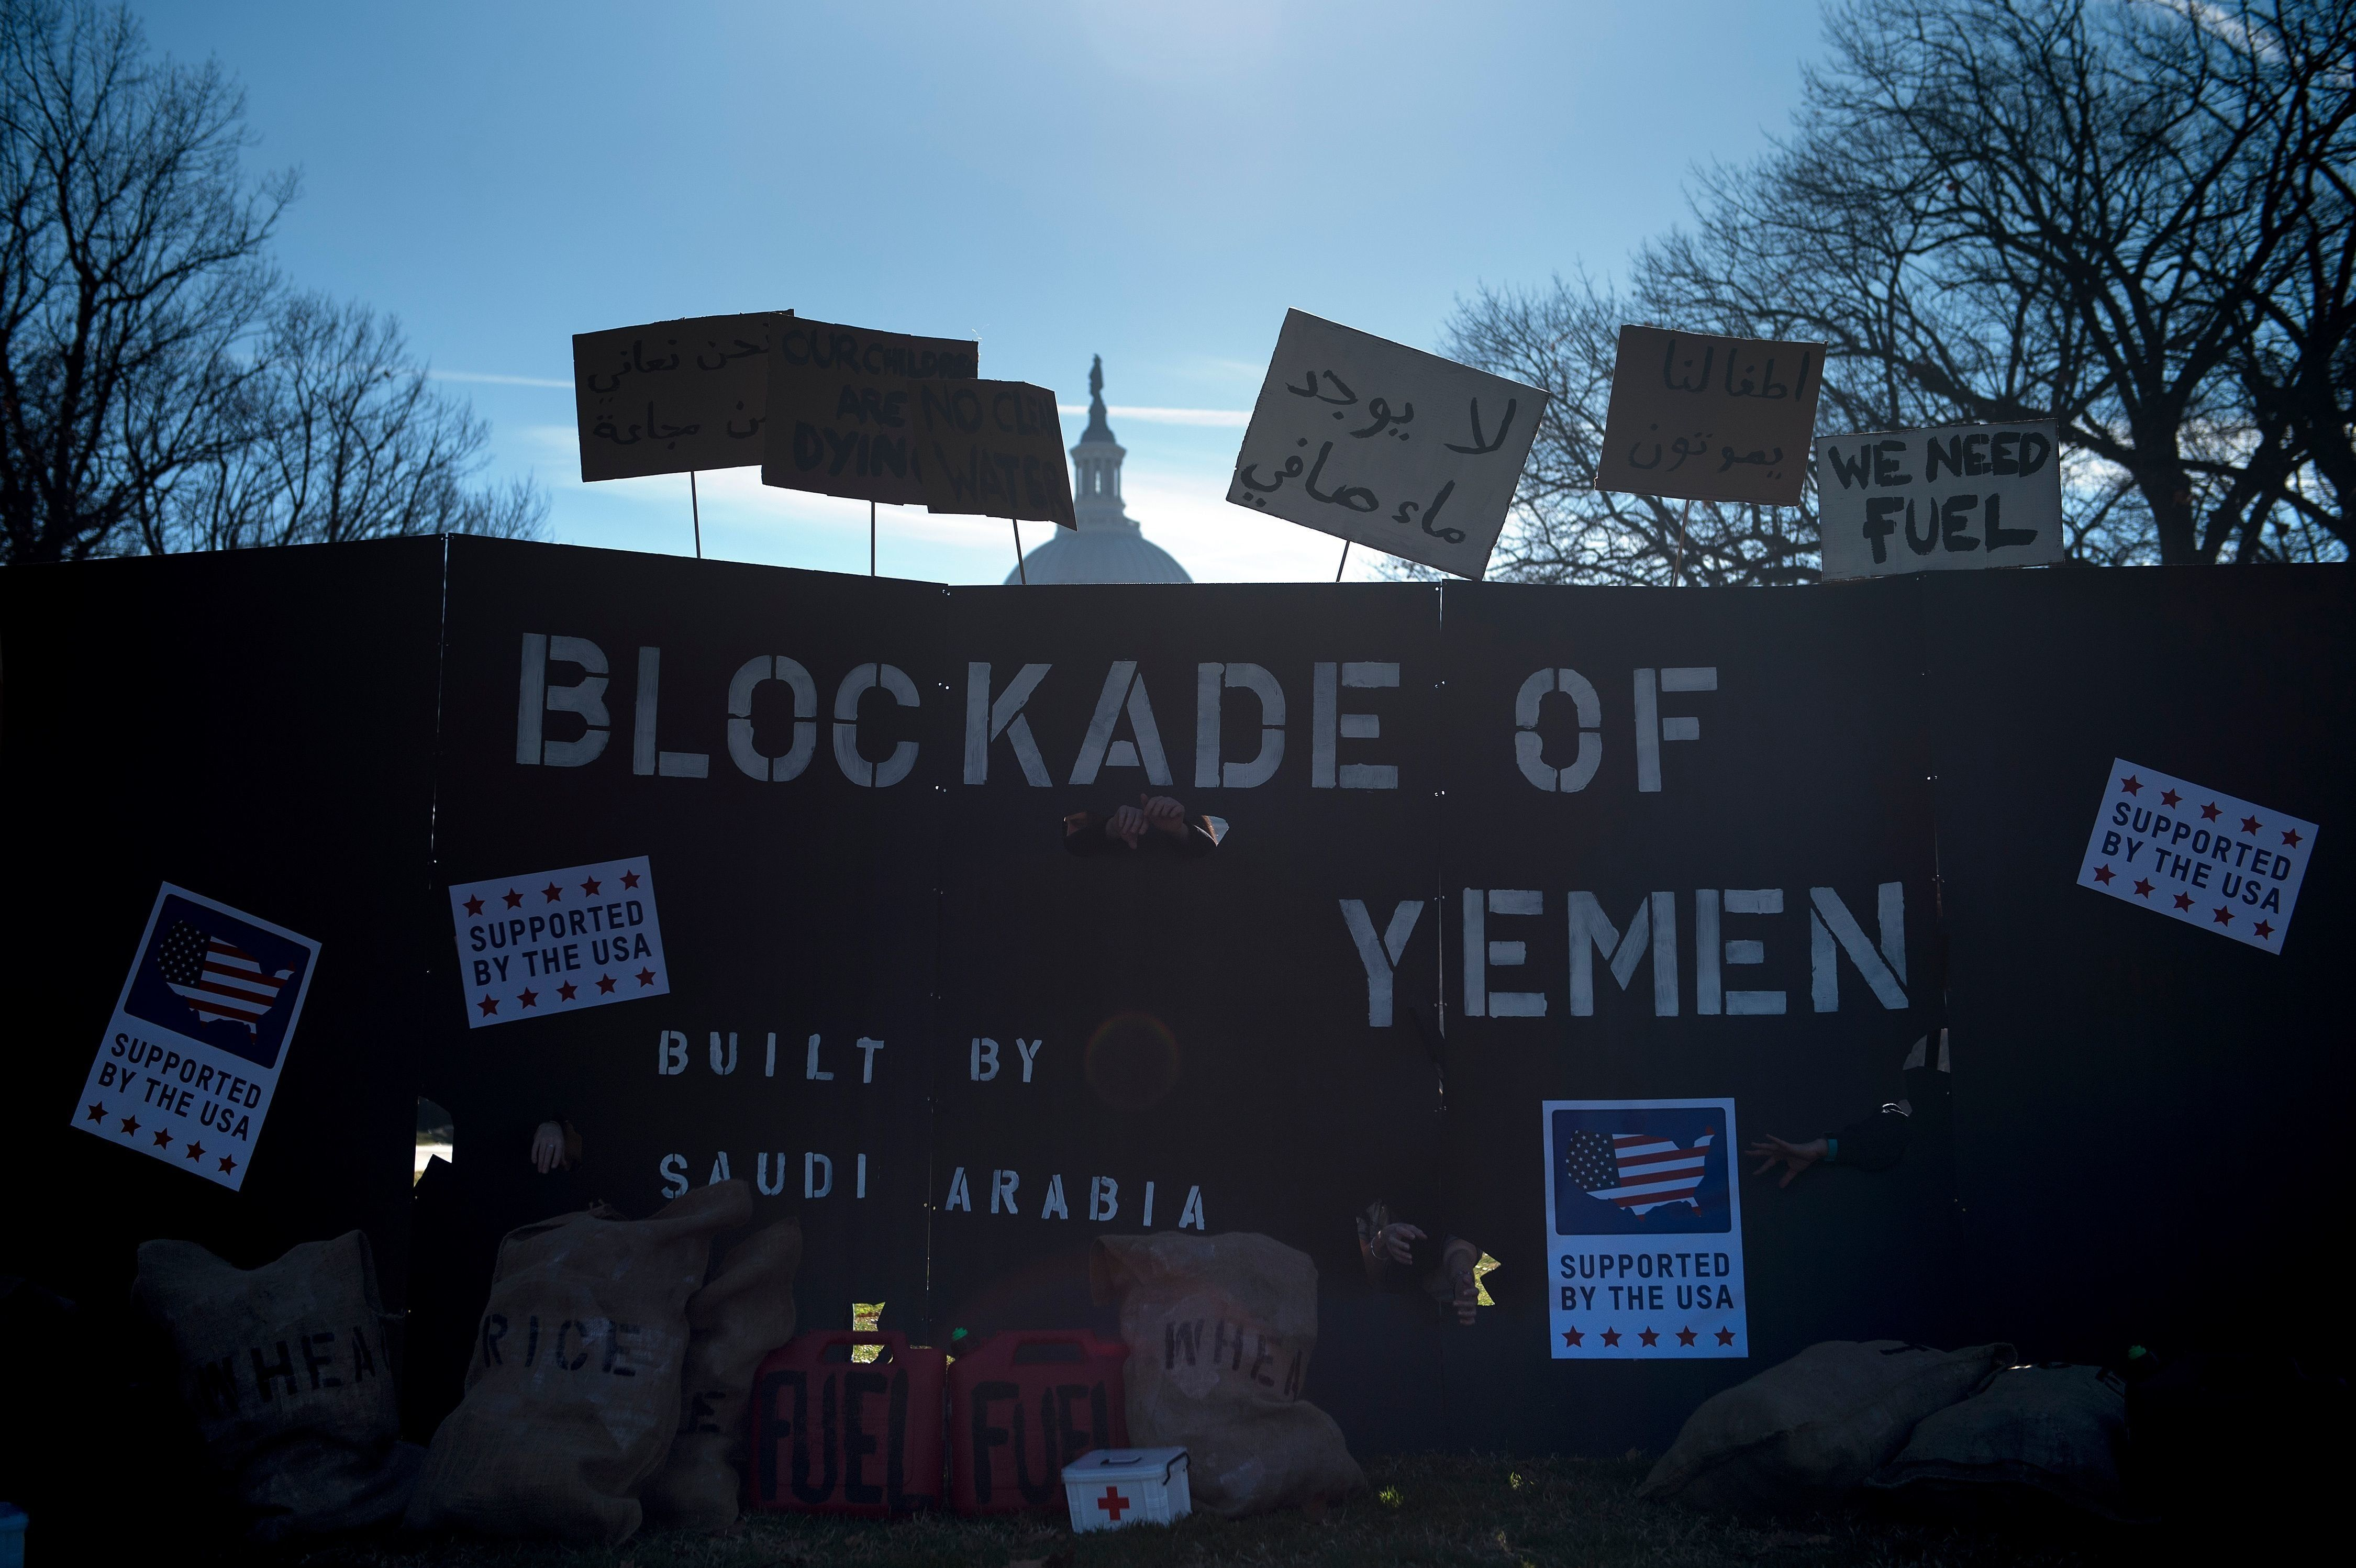 Activists rally against Saudi Arabia's blockade of Yemen on Capitol Hill December 18, 2017 in Washington, DC. / AFP PHOTO / Brendan Smialowski        (Photo credit should read BRENDAN SMIALOWSKI/AFP/Getty Images)